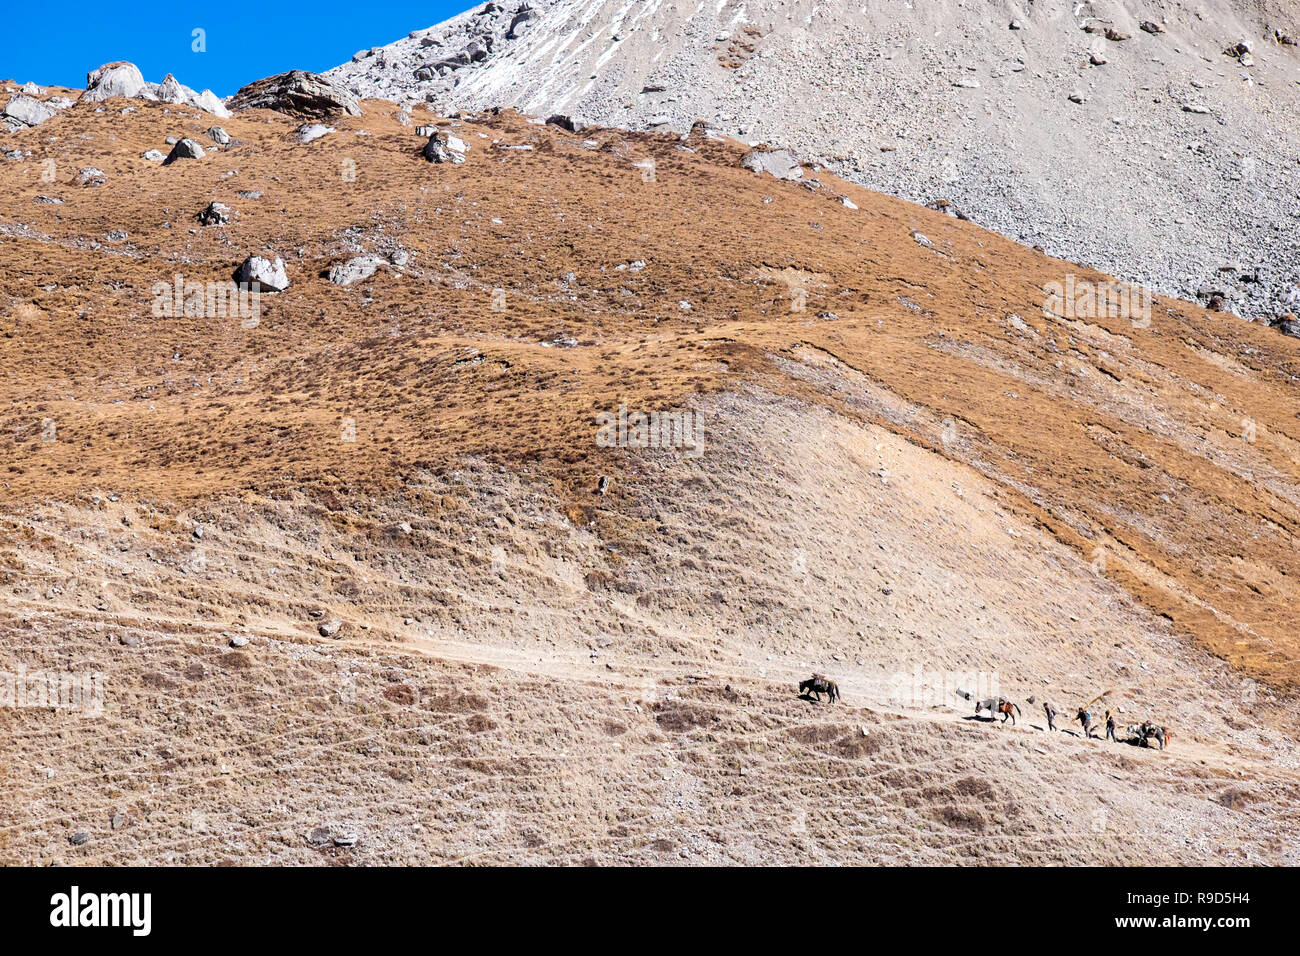 A group of traders with horses crossing a traditional trade route over a pass from Nepal into Tibet - Stock Image